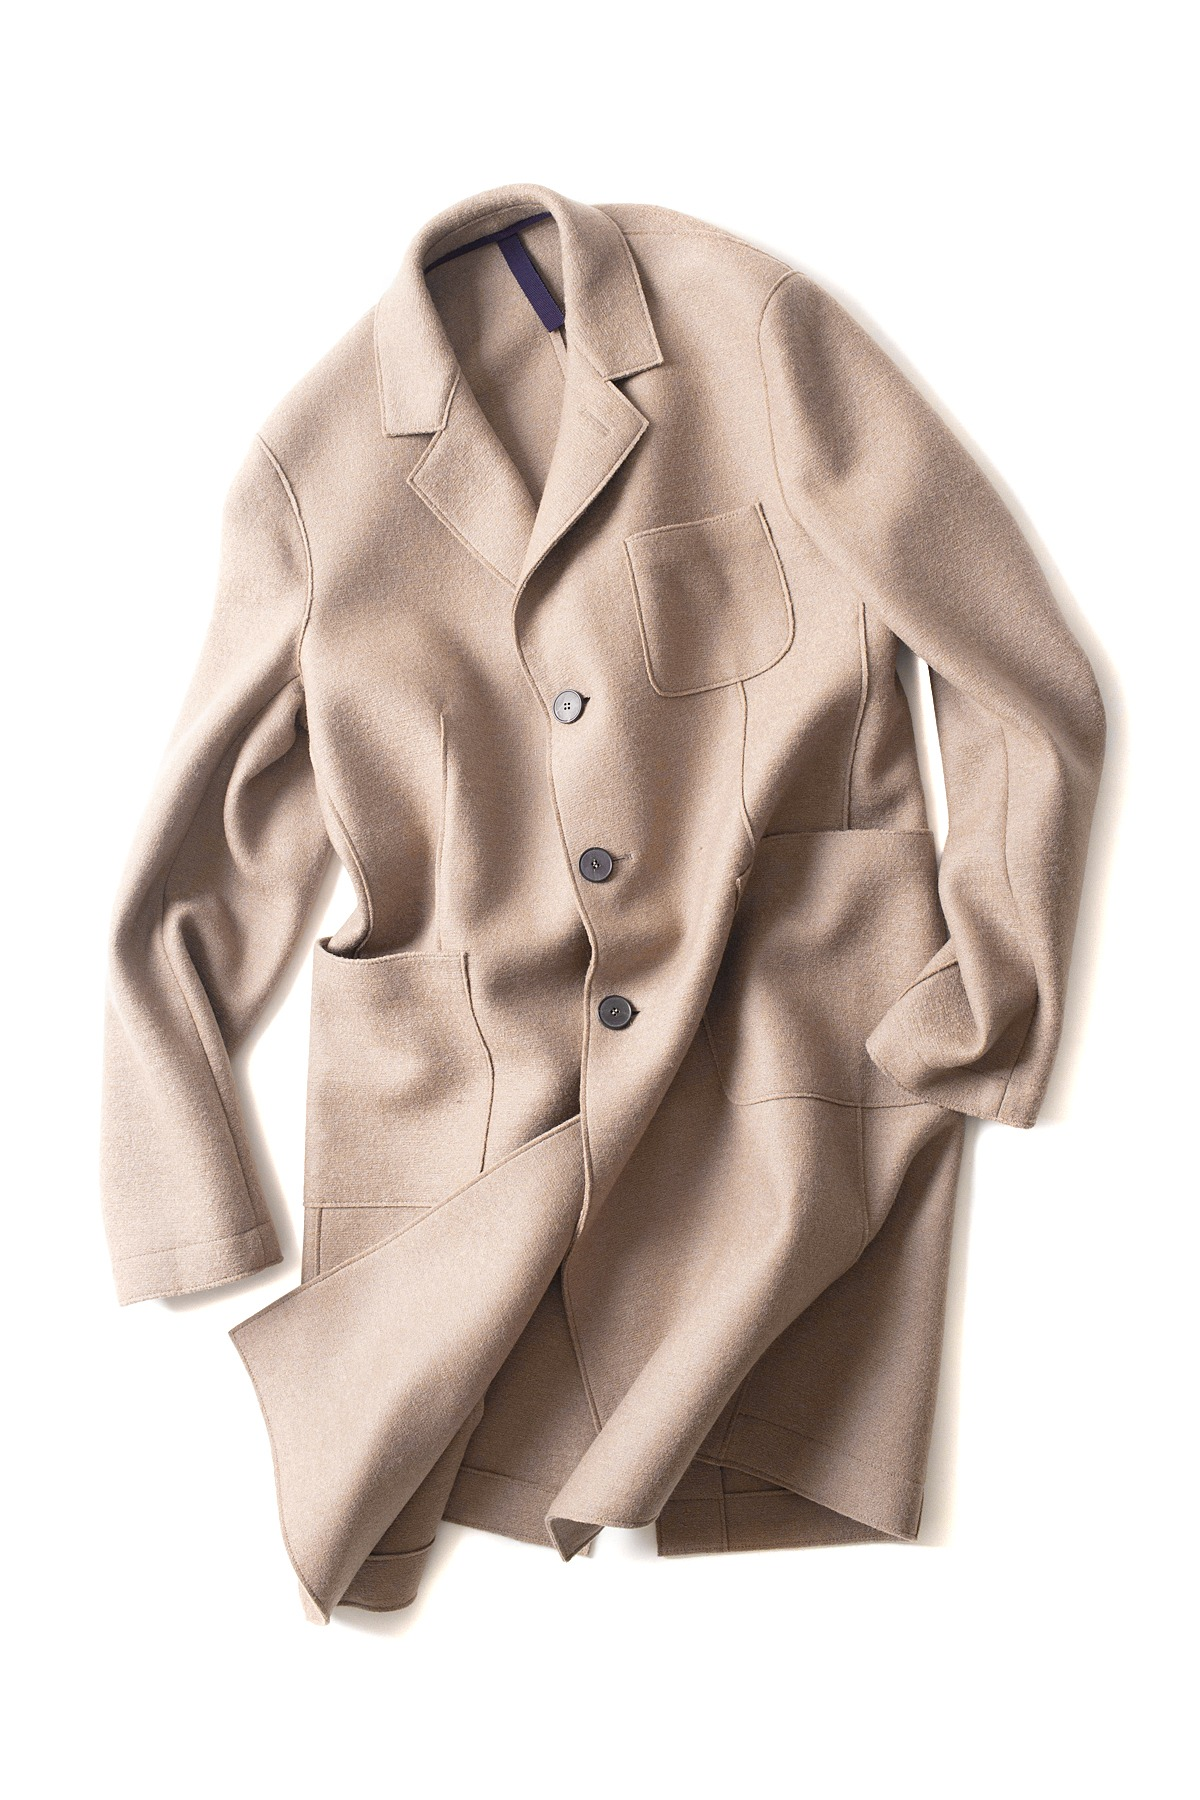 Harris Wharf London : 3 Pocket Pressed Wool Coat (Camel)